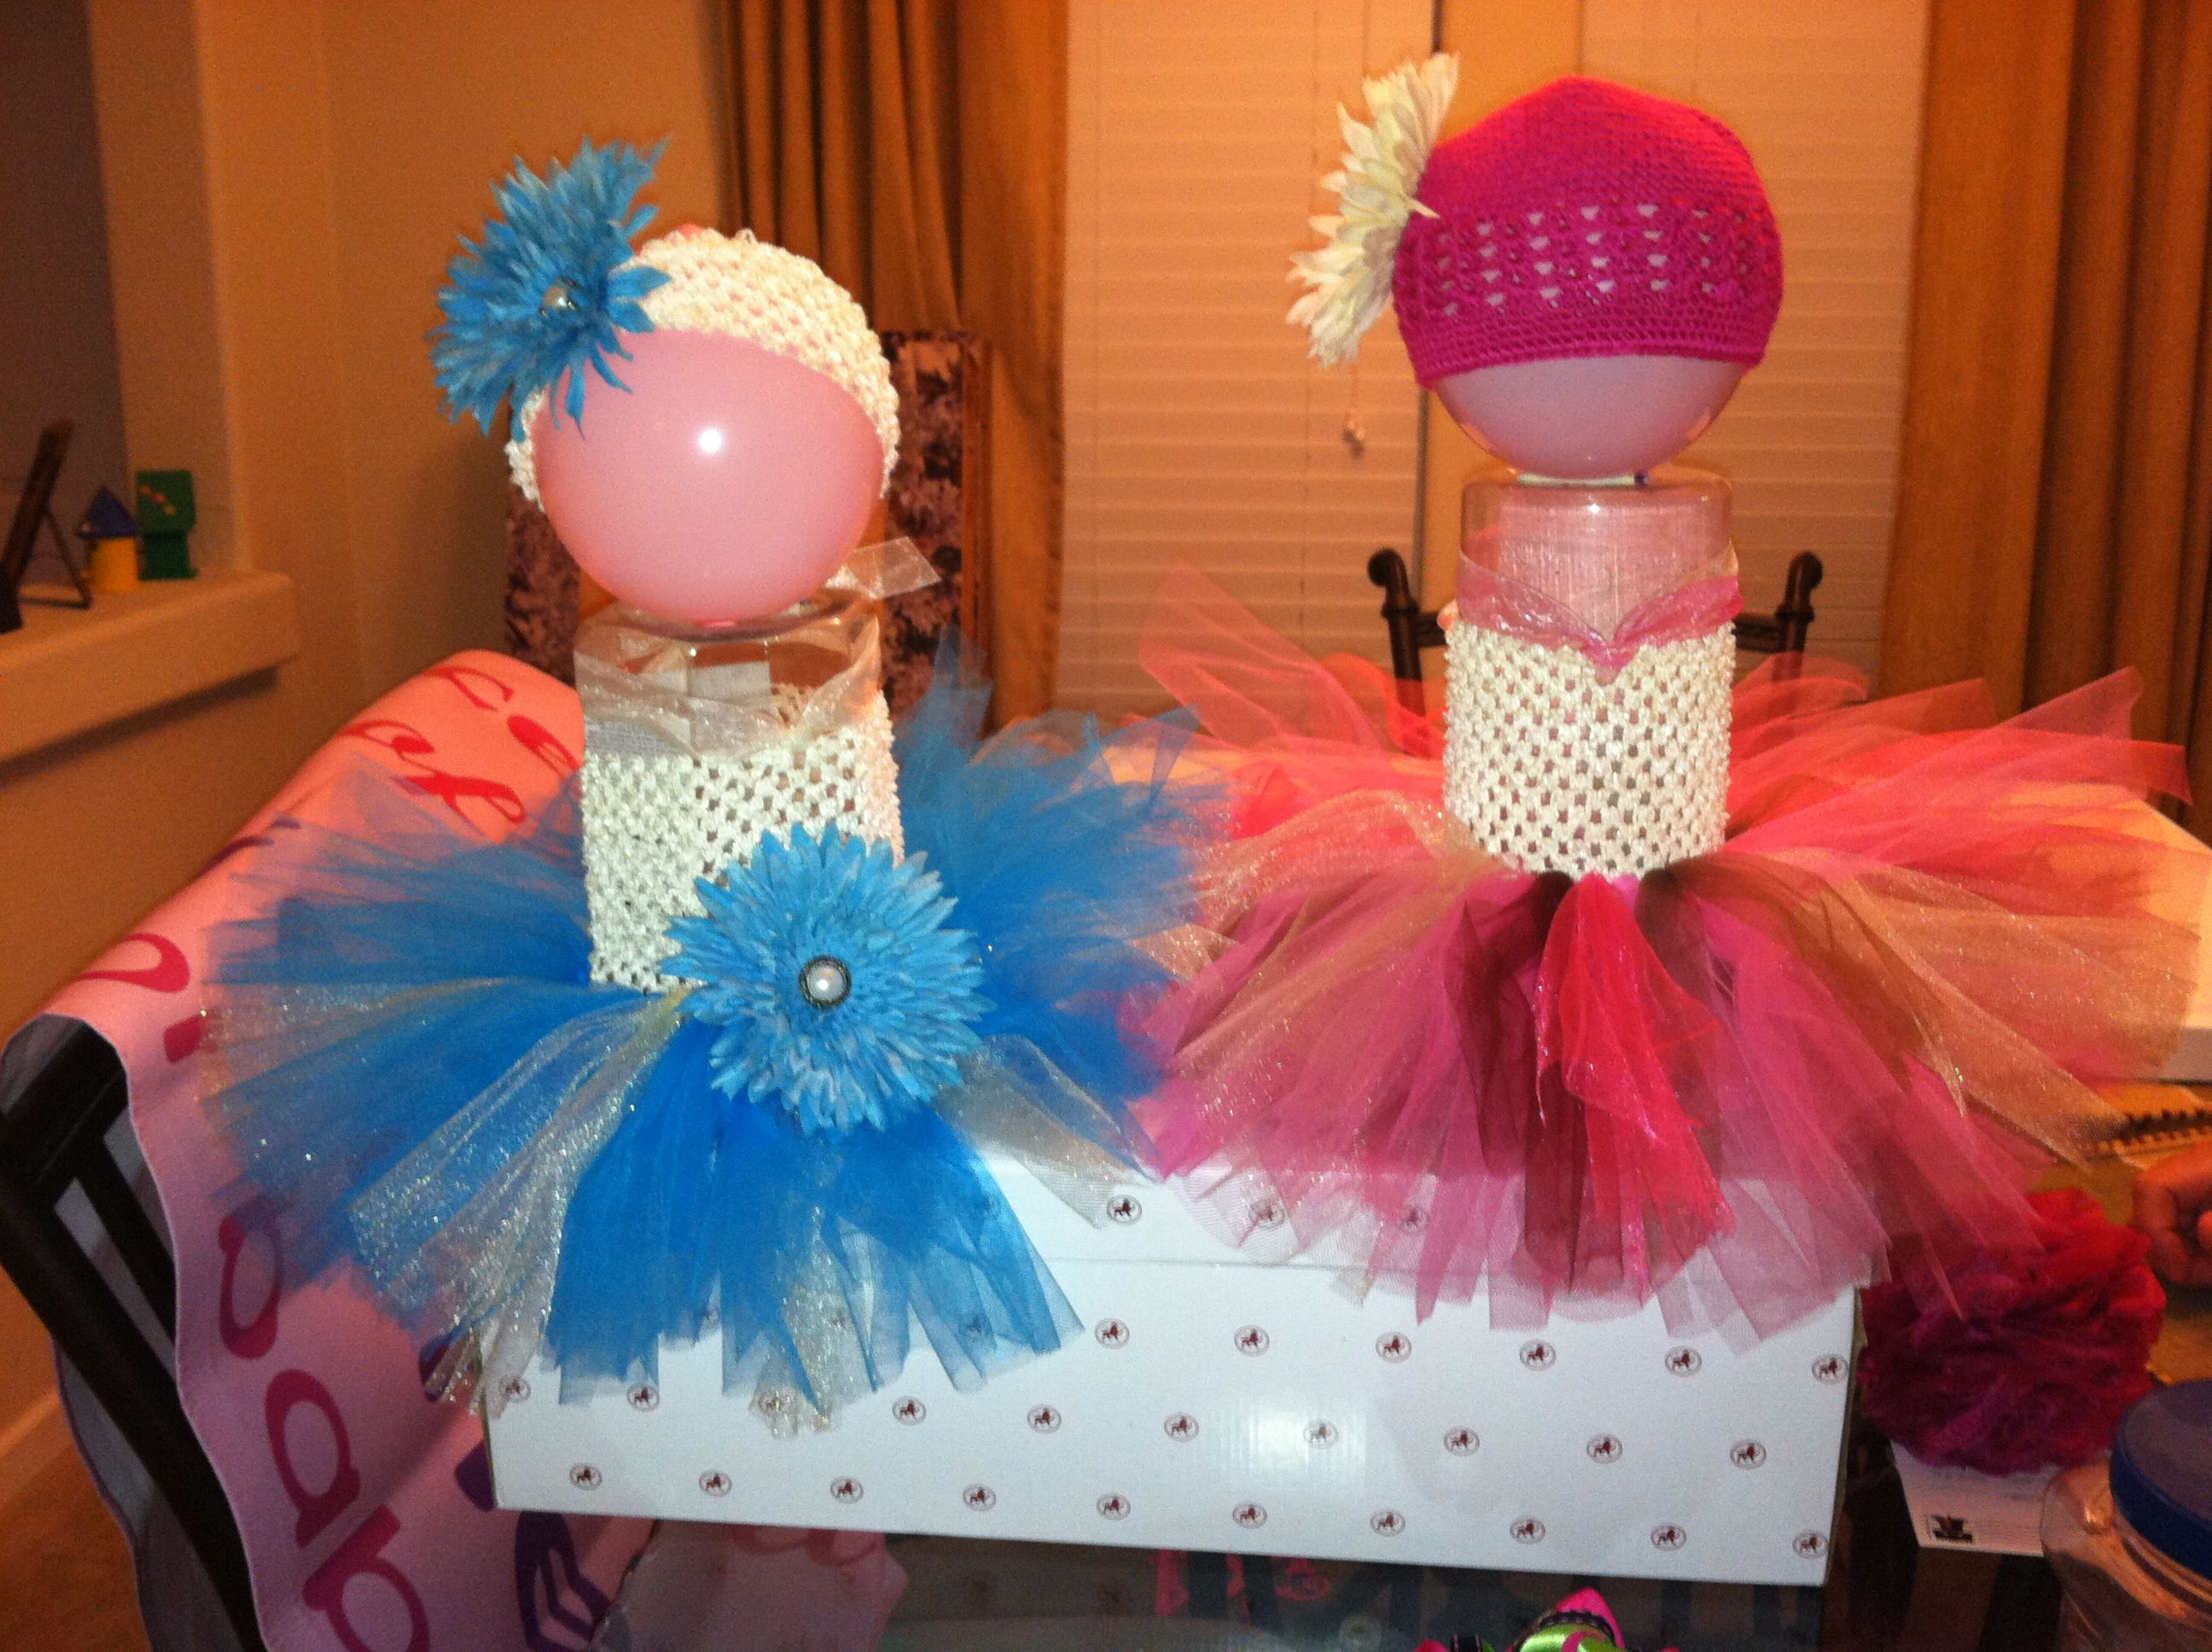 Too Cute Of A Way To Display Baby Tutu For Craft Show